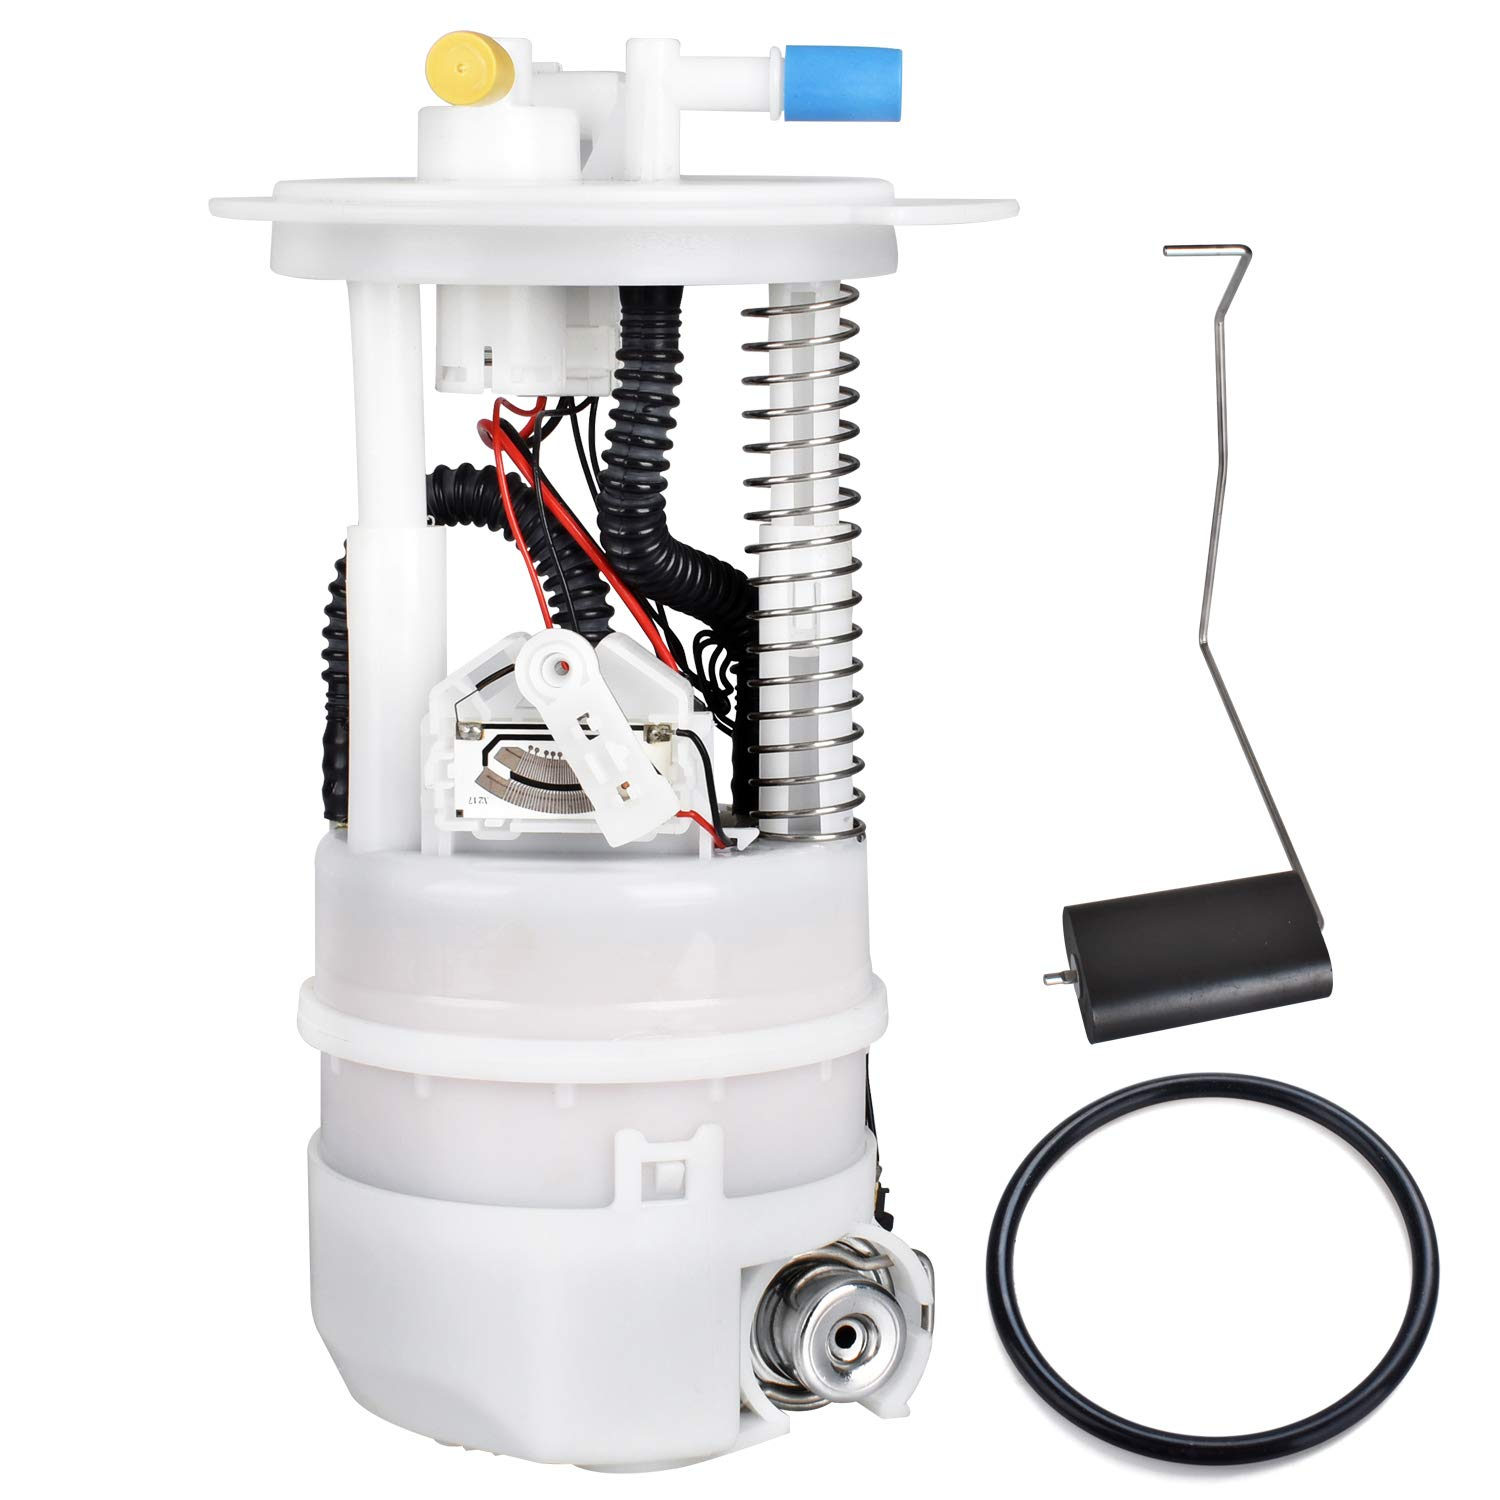 FAERSI Fuel Pump Assembly Replace OEM# E8545M Compatible with 2004-2008 Nissan Maxima 04 -2006 Nissan Altima 04-2009 Nissan Quest V6 3.5L